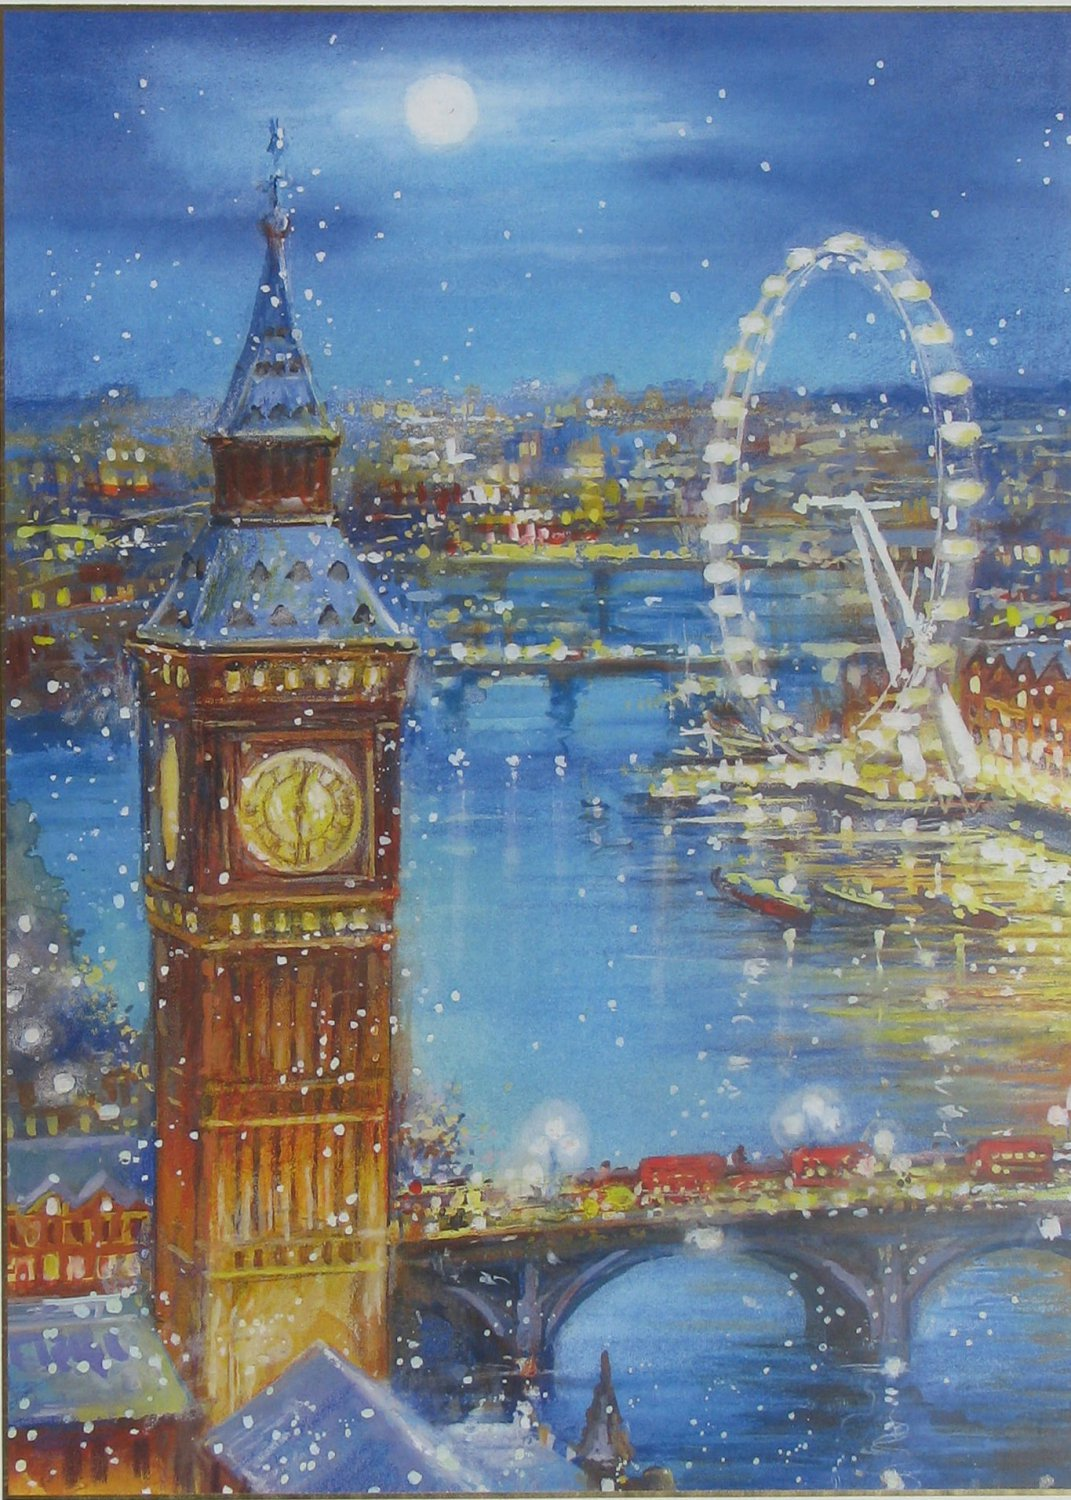 Clemontoni SNOW FLAKES ON THE BIG BEN 1000 pc Jigsaw Puzzle